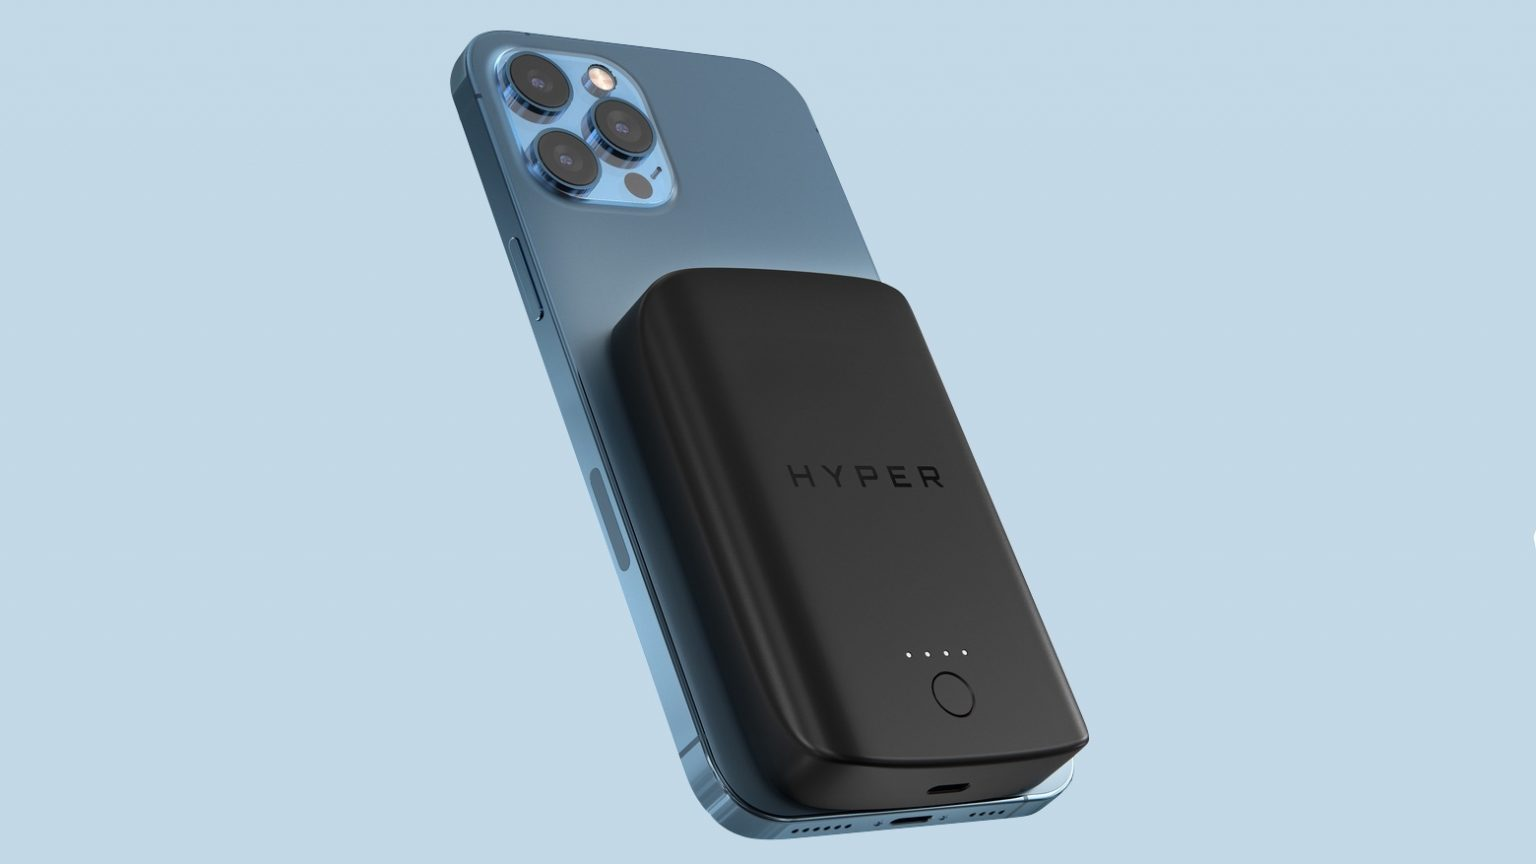 HyperJuice Magnetic Wireless Battery Pack for iPhone 12 adds 5000mAh to your handsets.